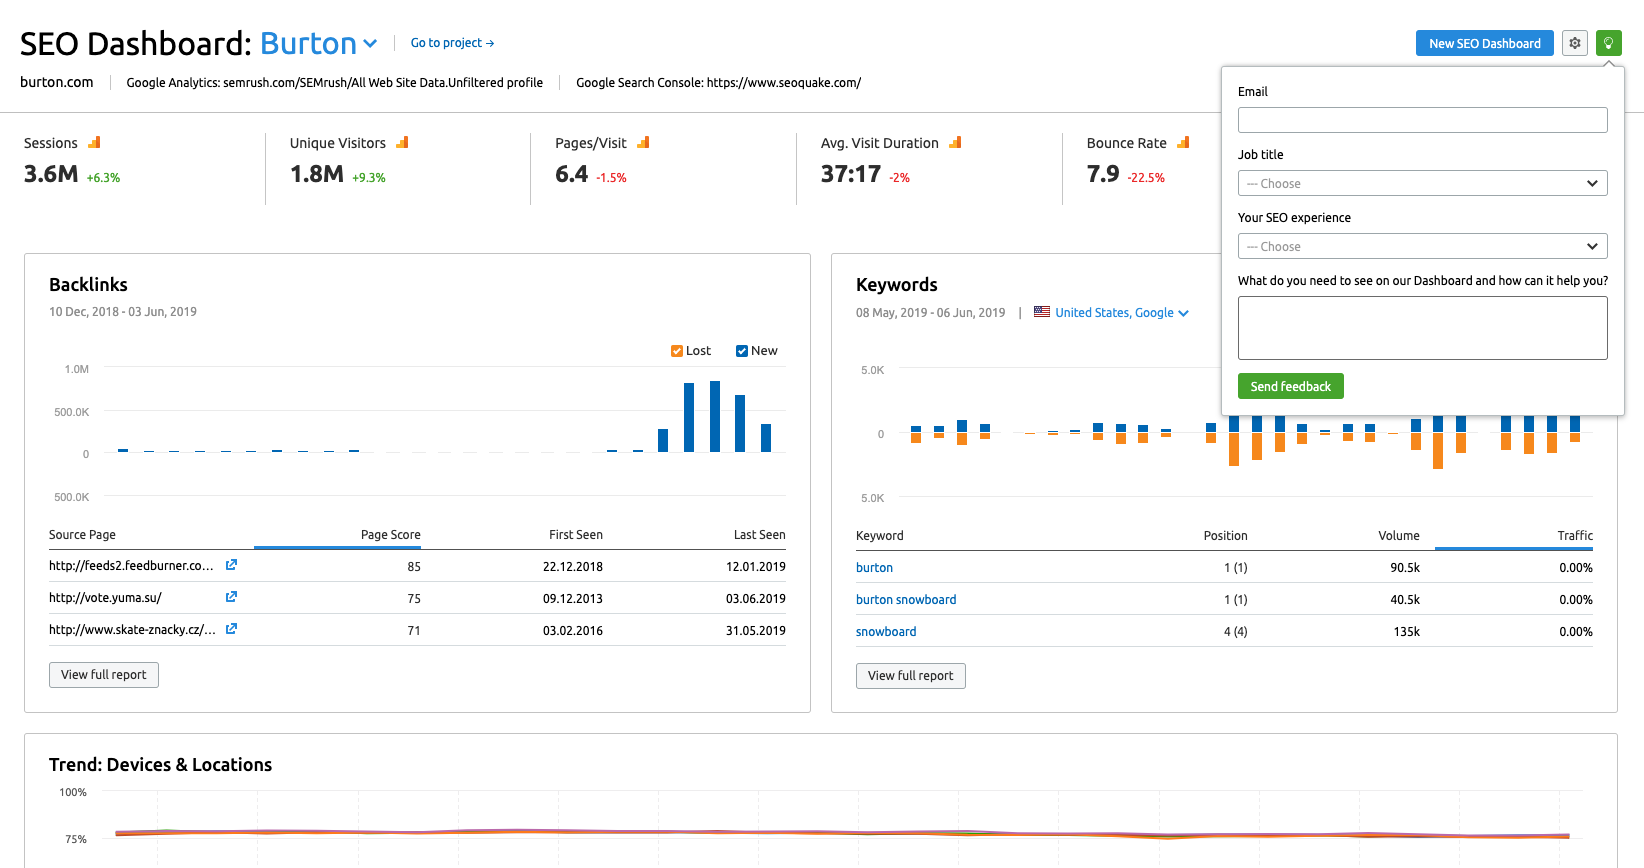 SEO Dashboard image 7